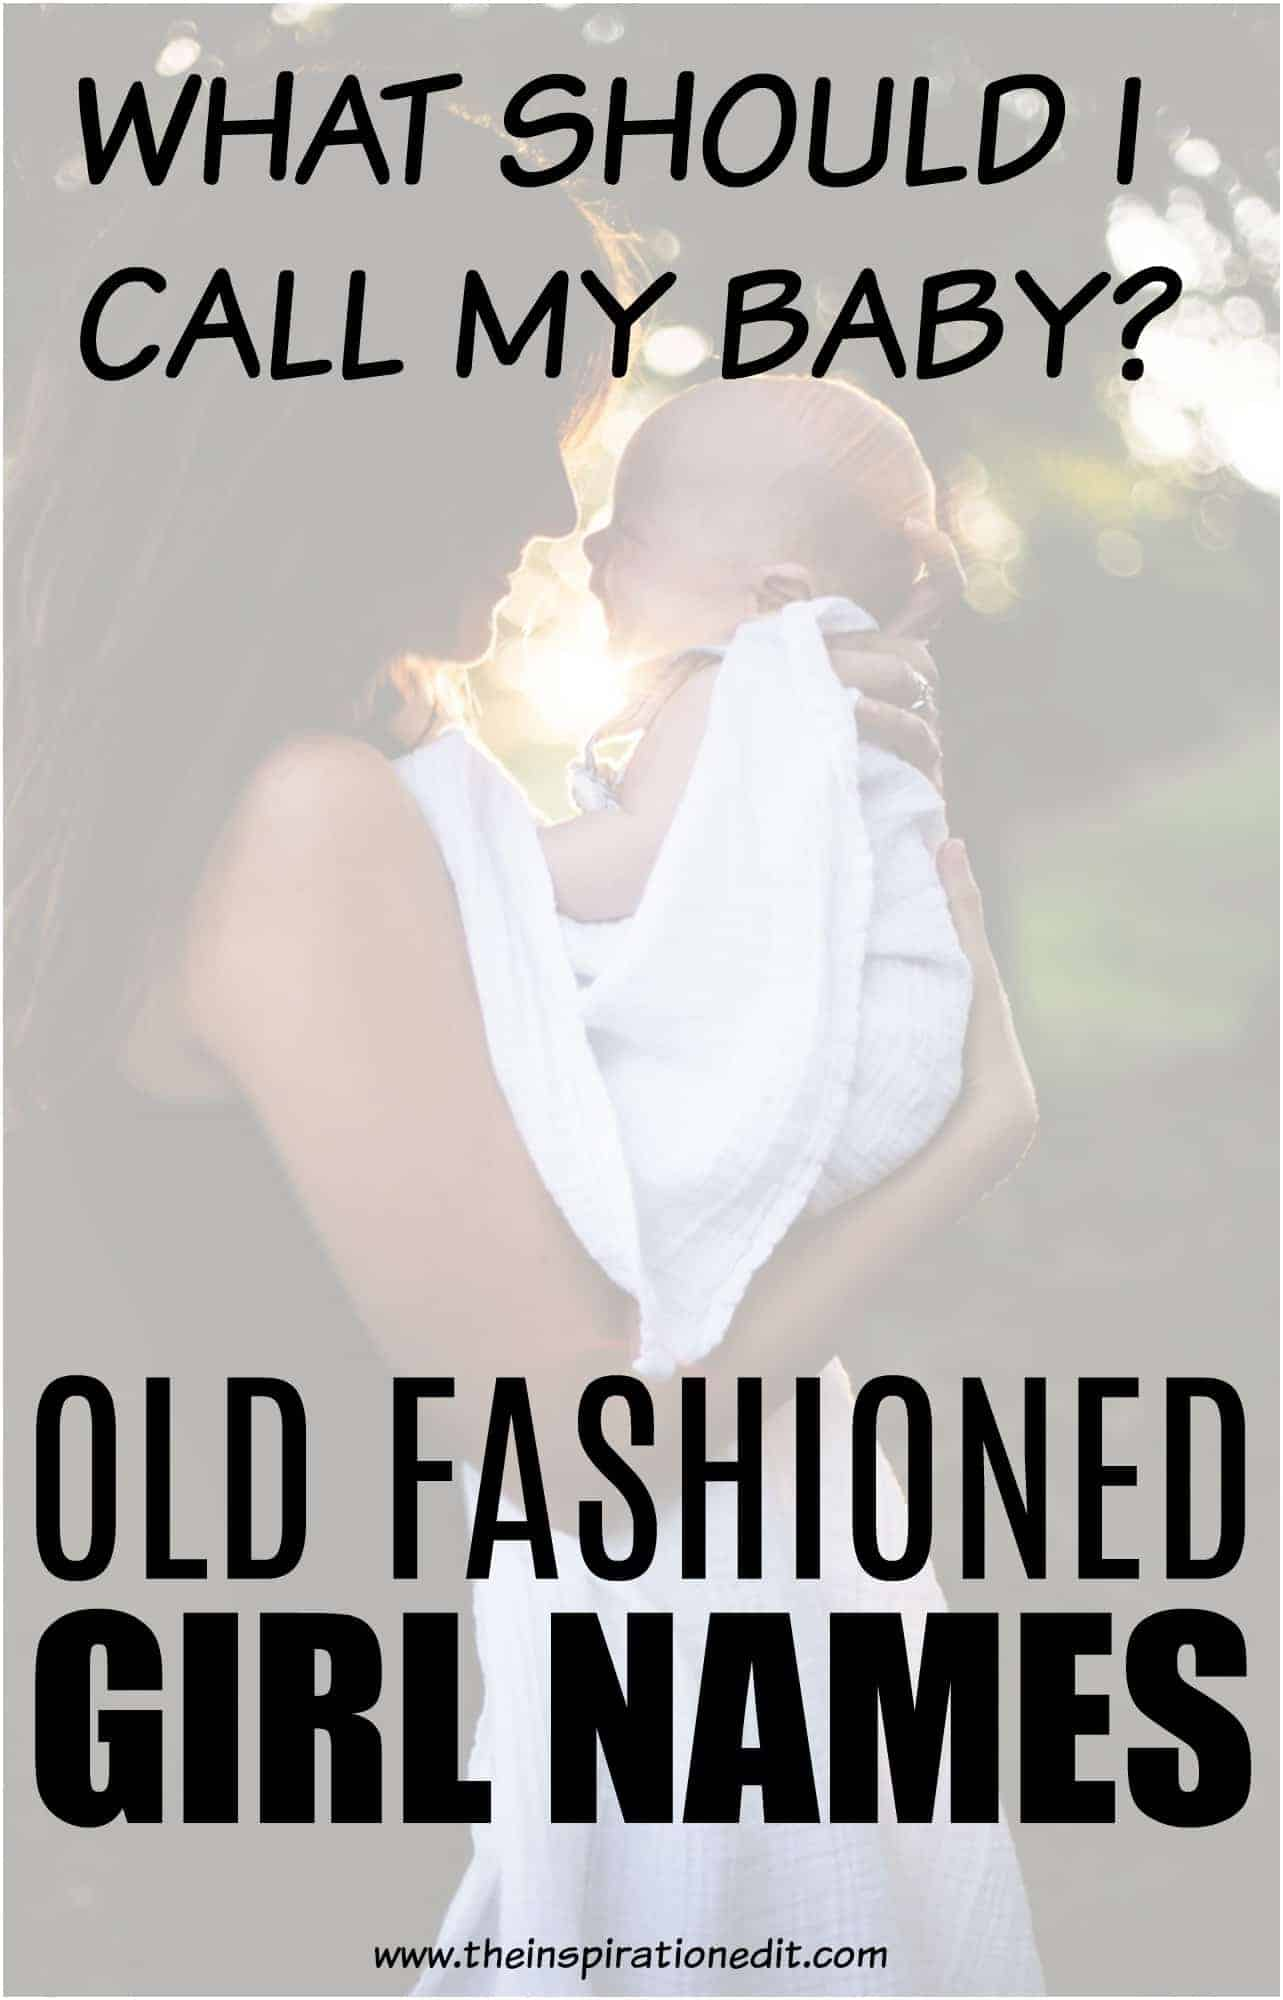 old fashioned girl names